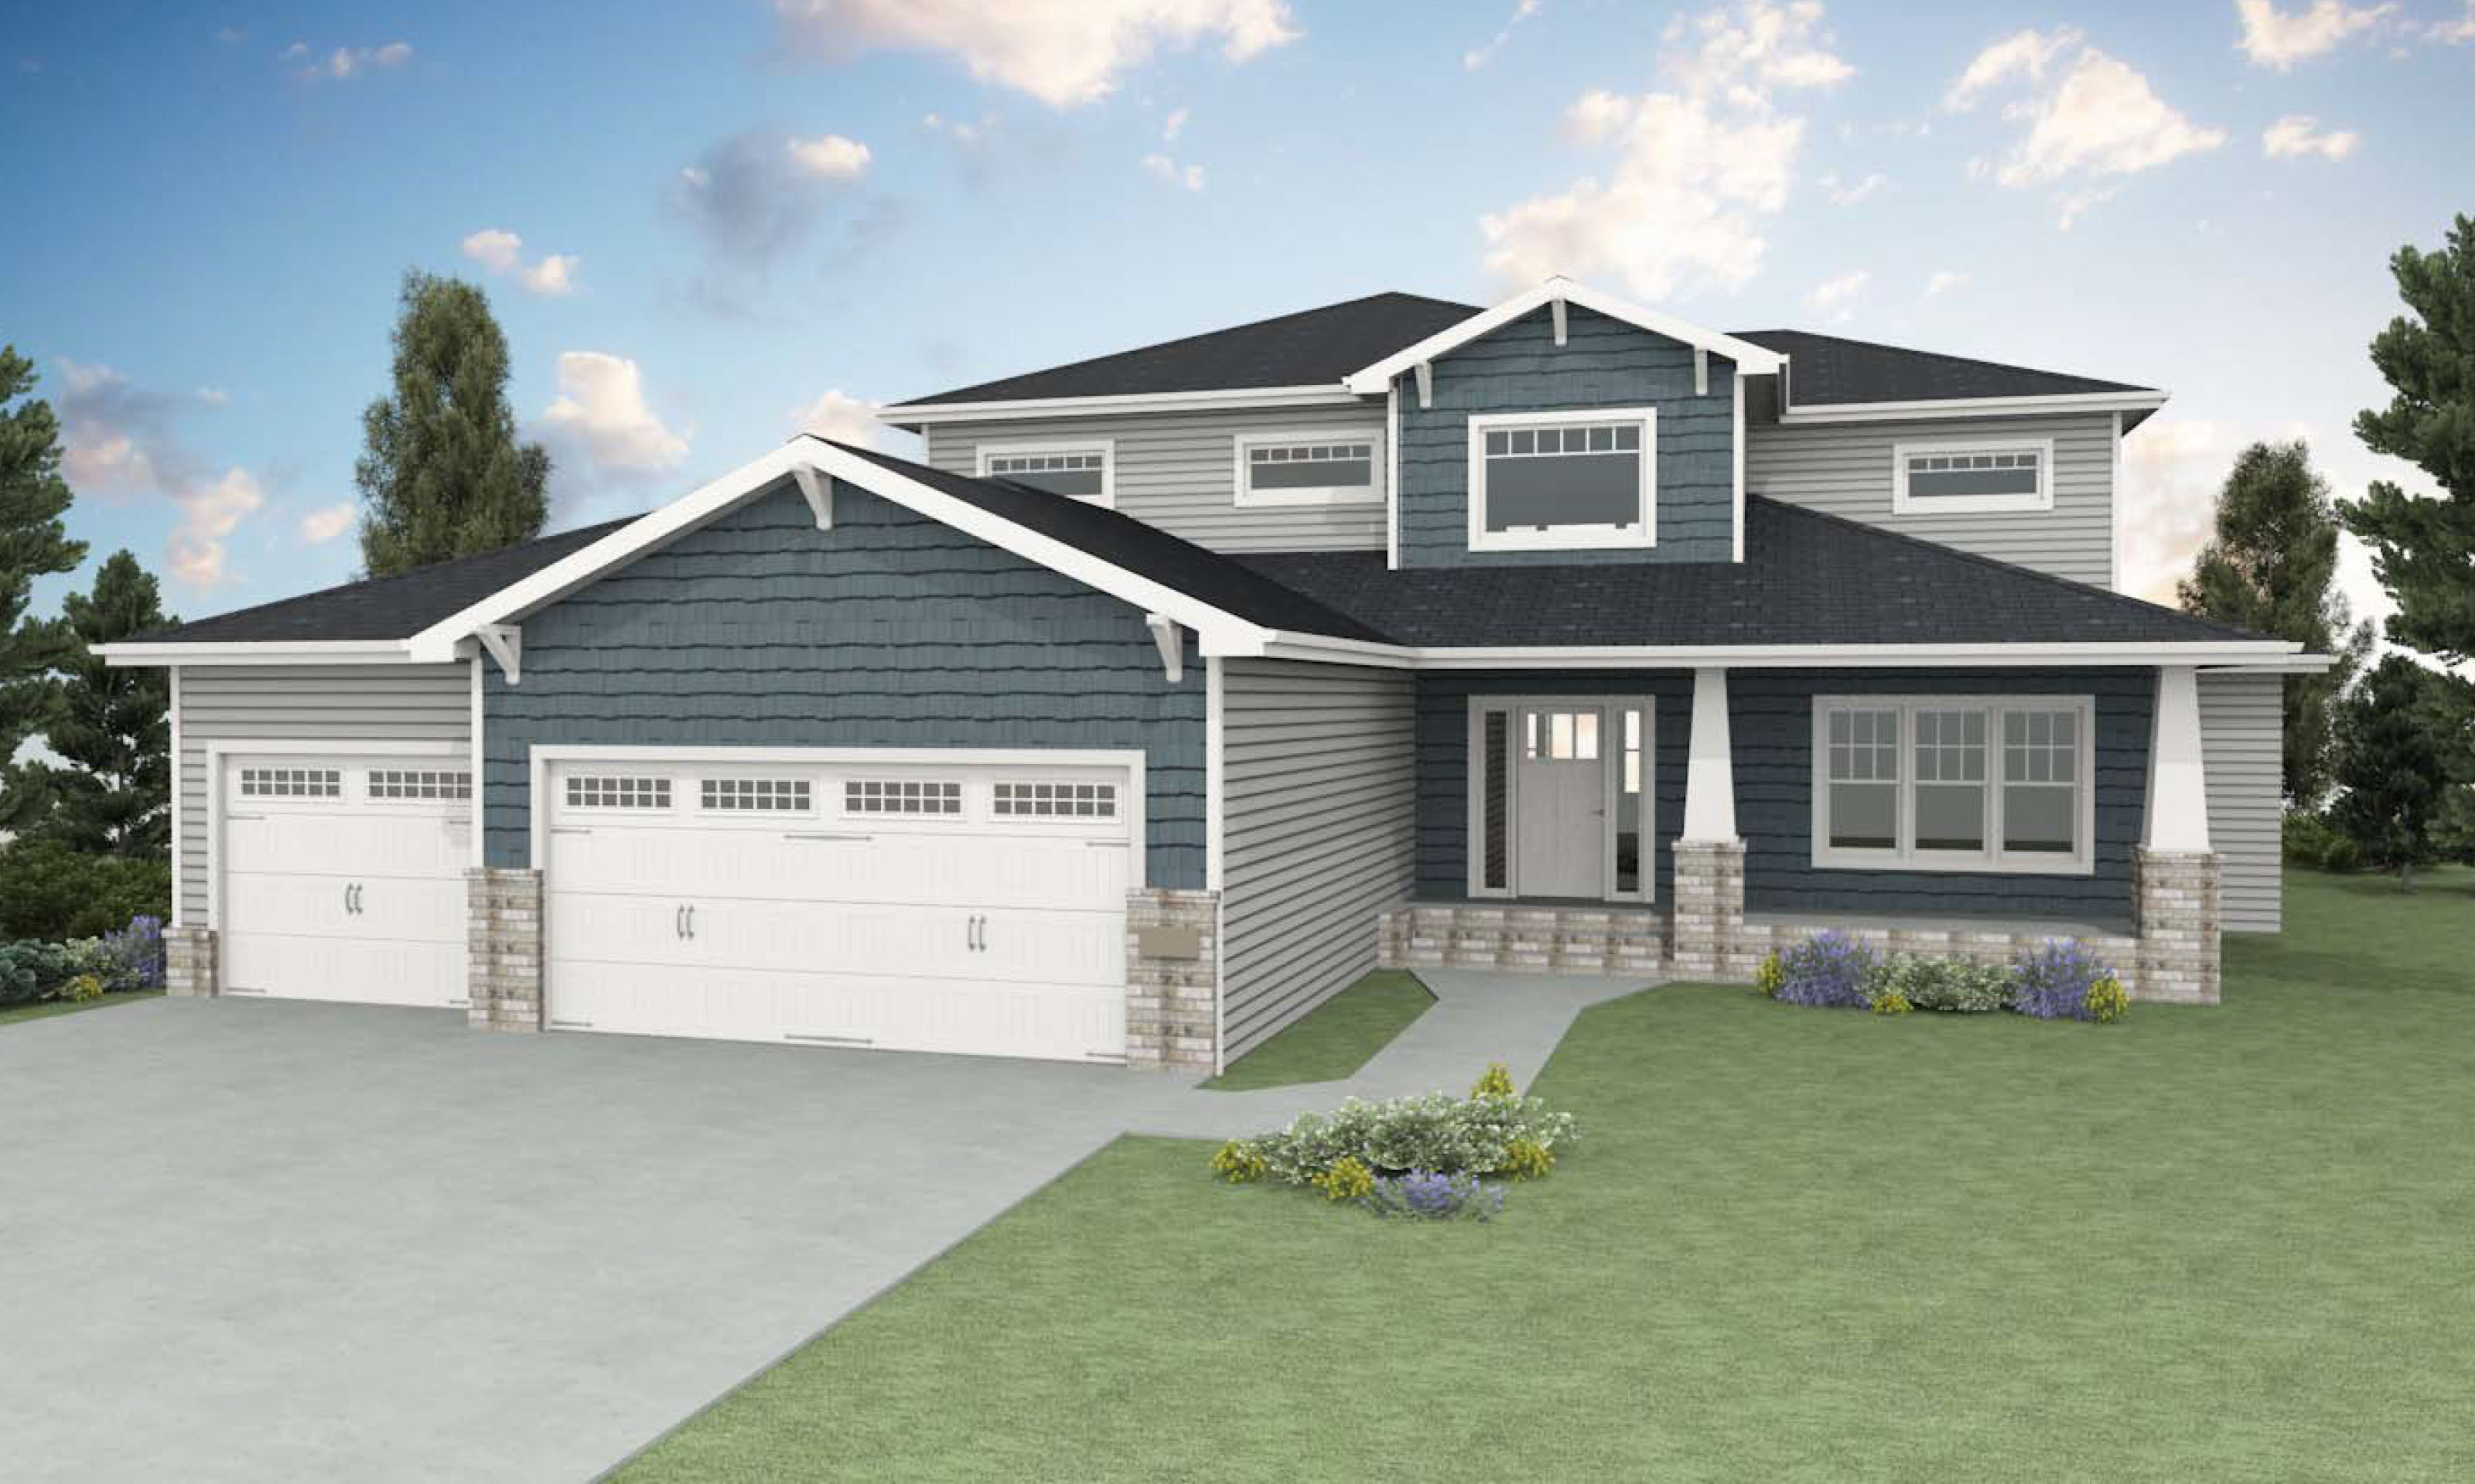 Our home designs heritage homes fargo moorhead custom for Fargo nd home builders